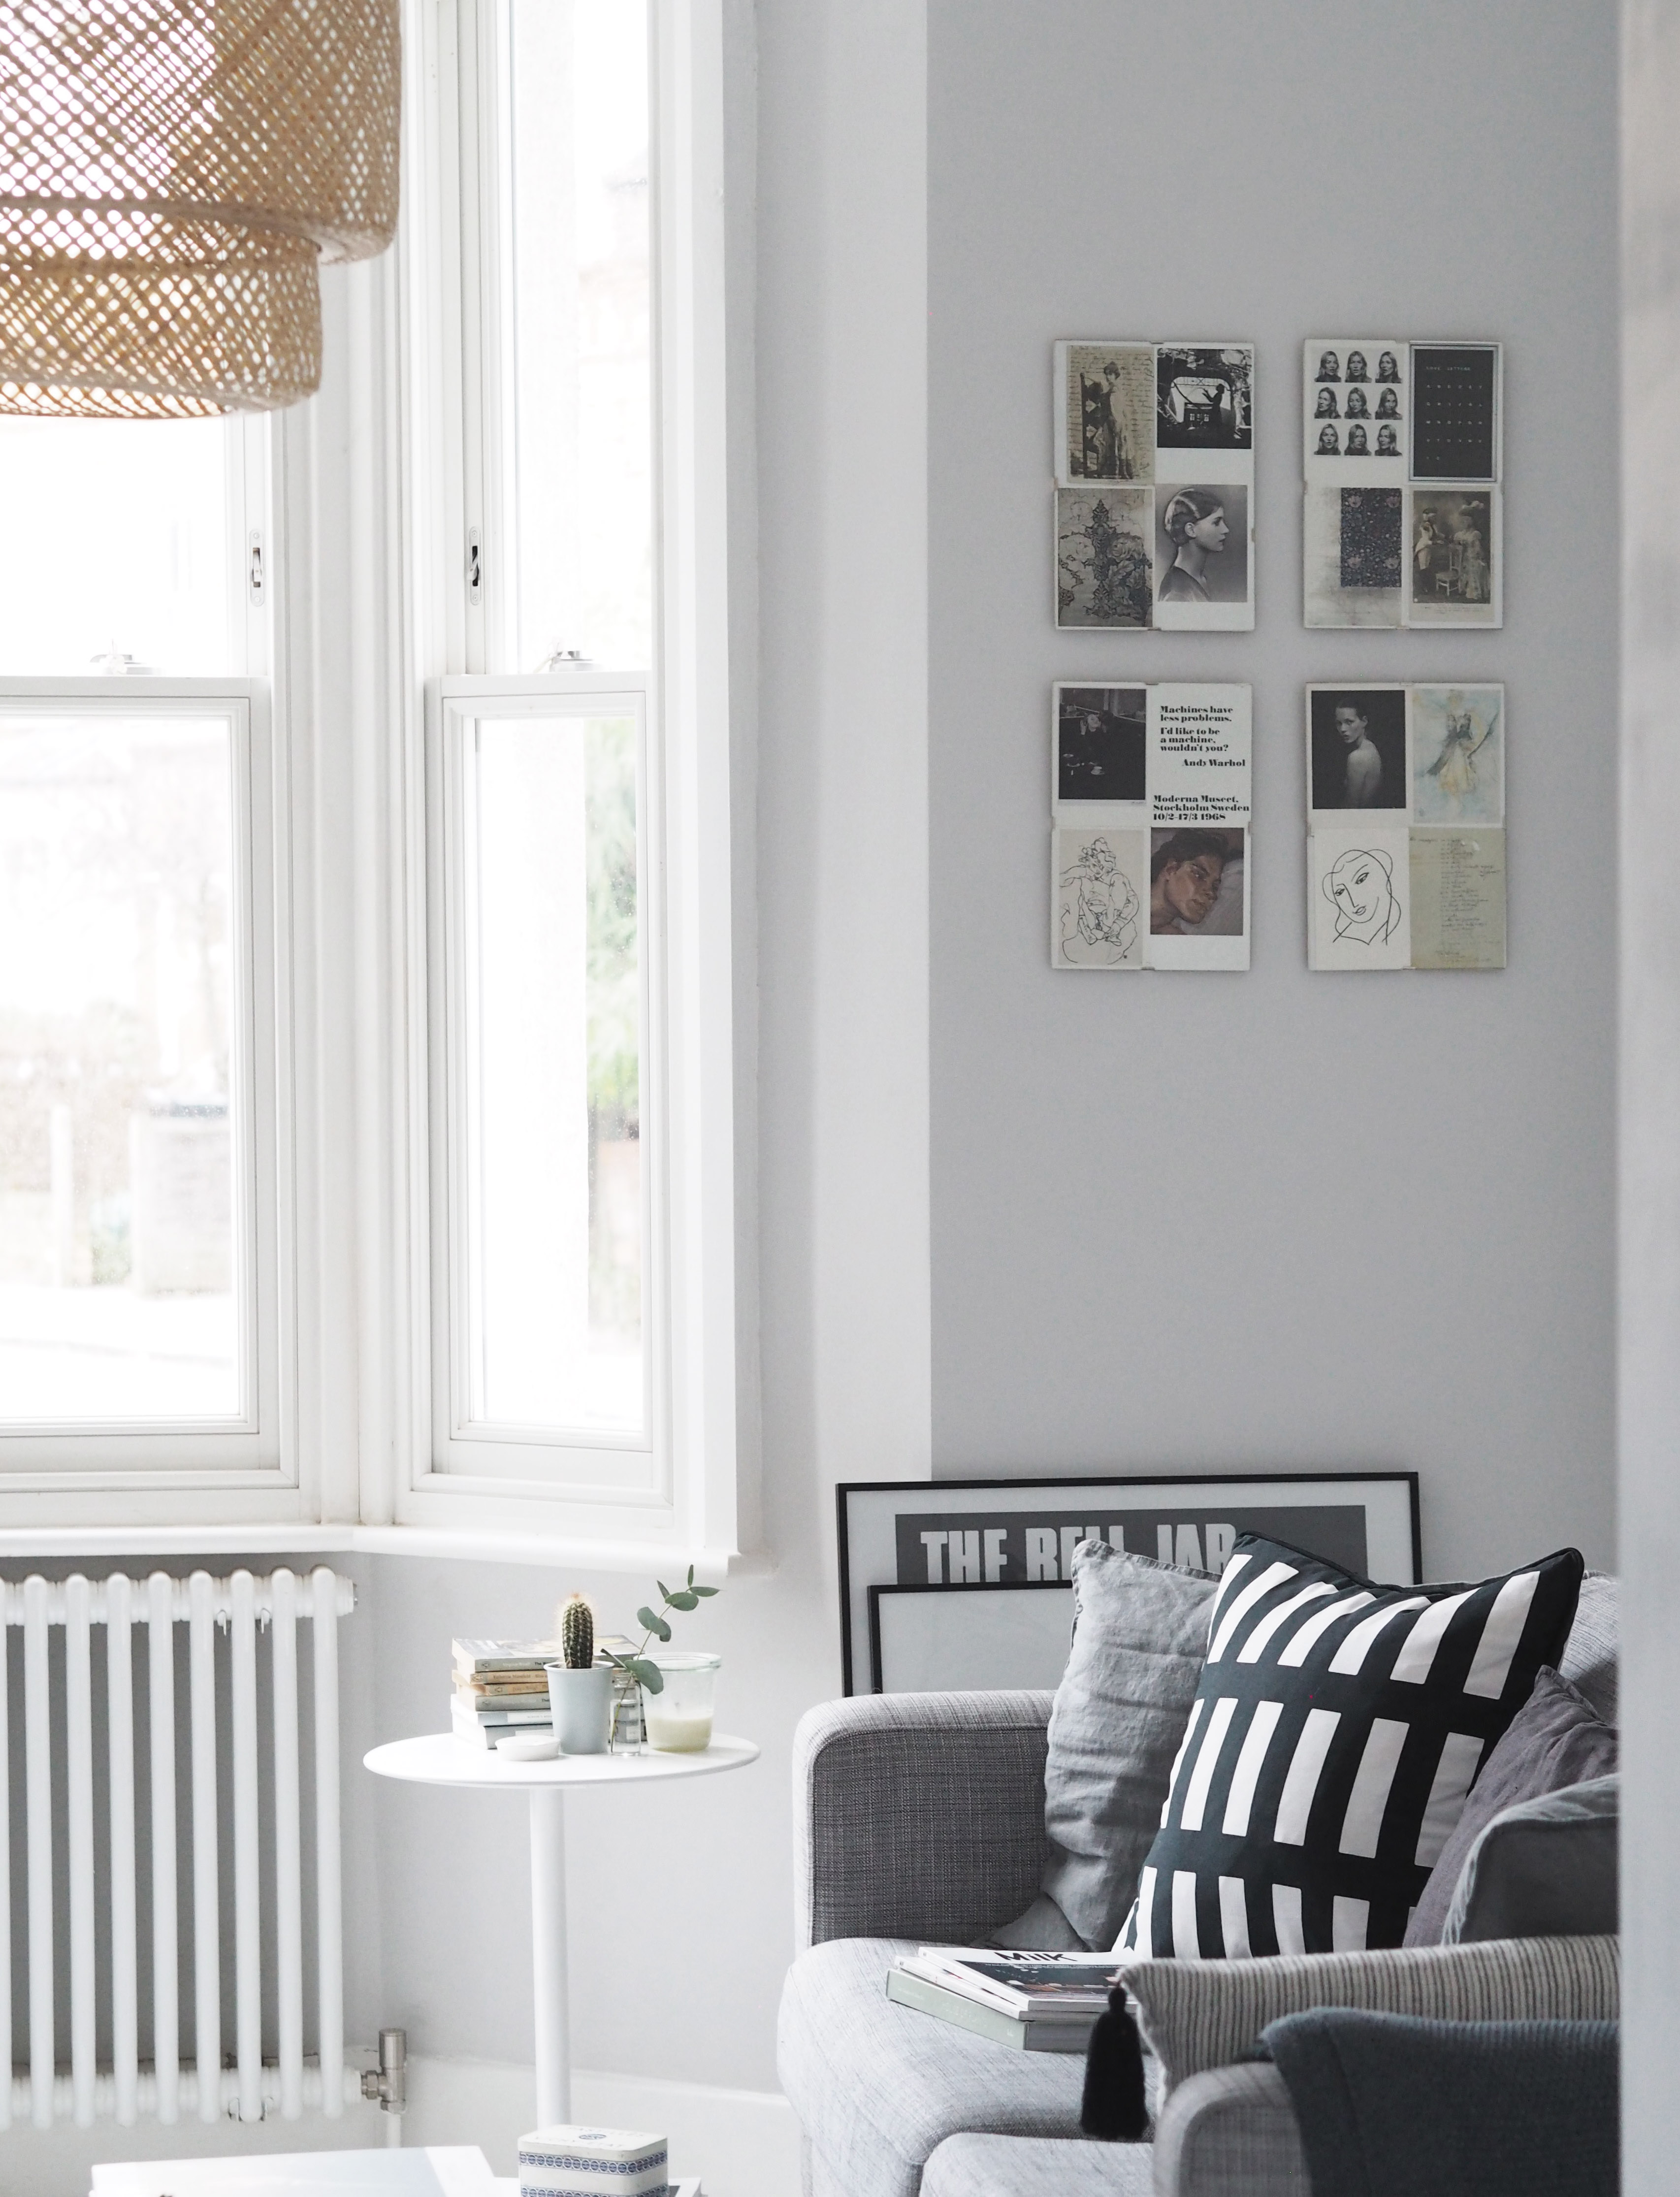 My Scandi Style Living Room Makeover Painted White Floors And Light Grey Walls Cate St Hill